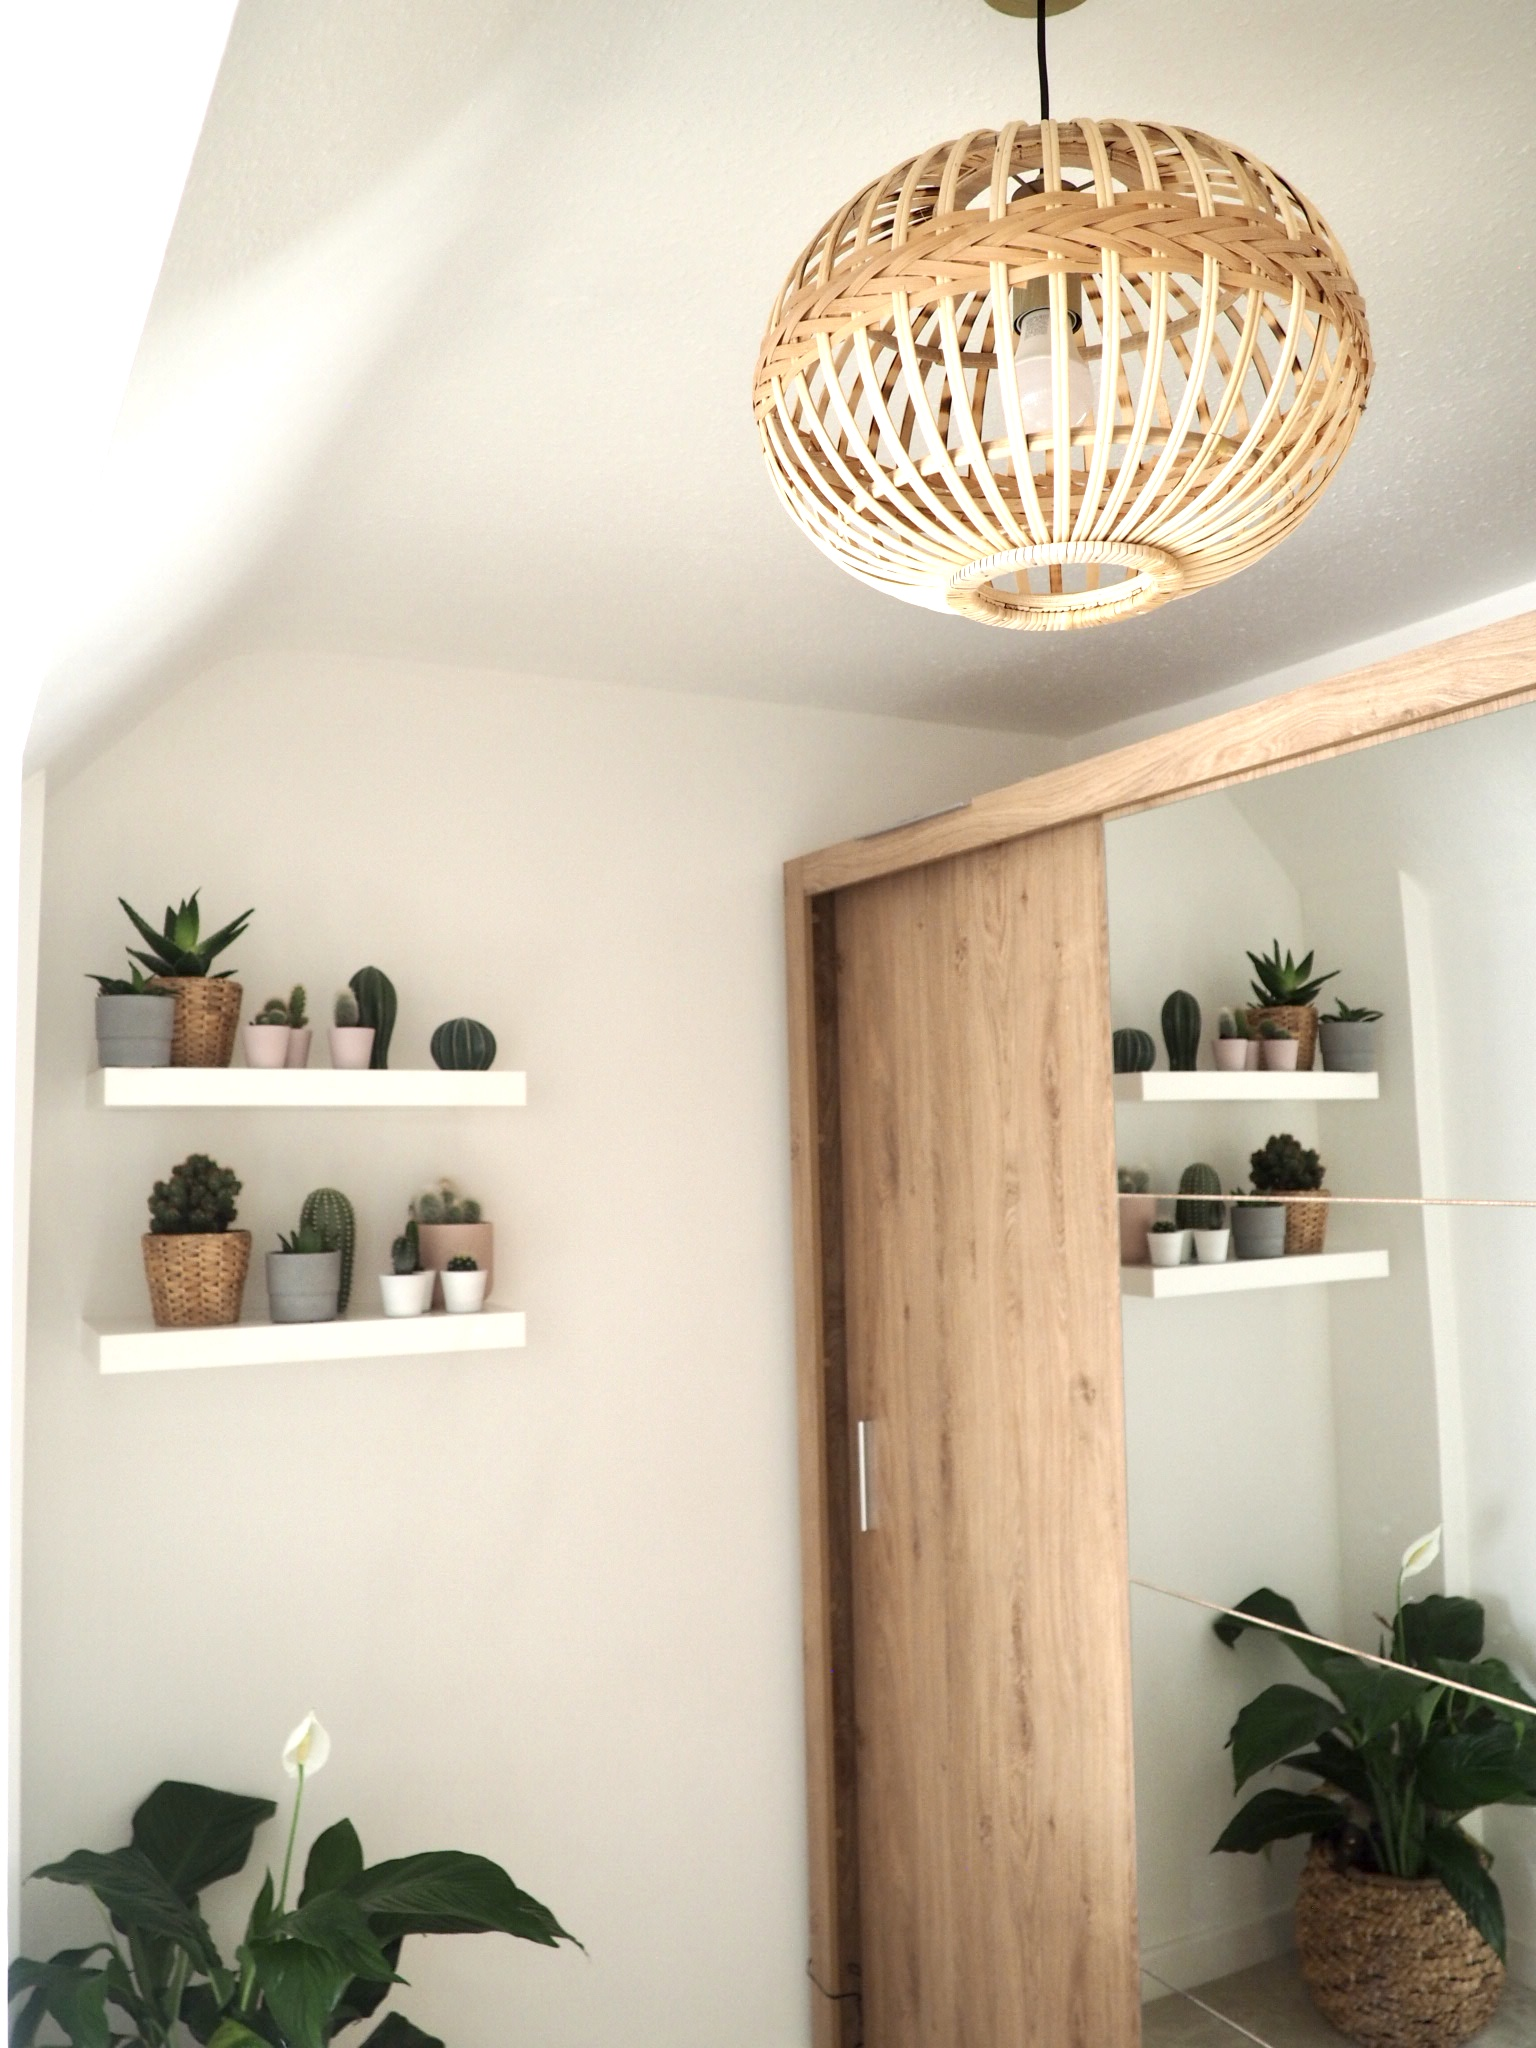 Bamboo pendant light by Wayfair hanging near the Instrument London wood wardrobes and the shelves with cactuses on.